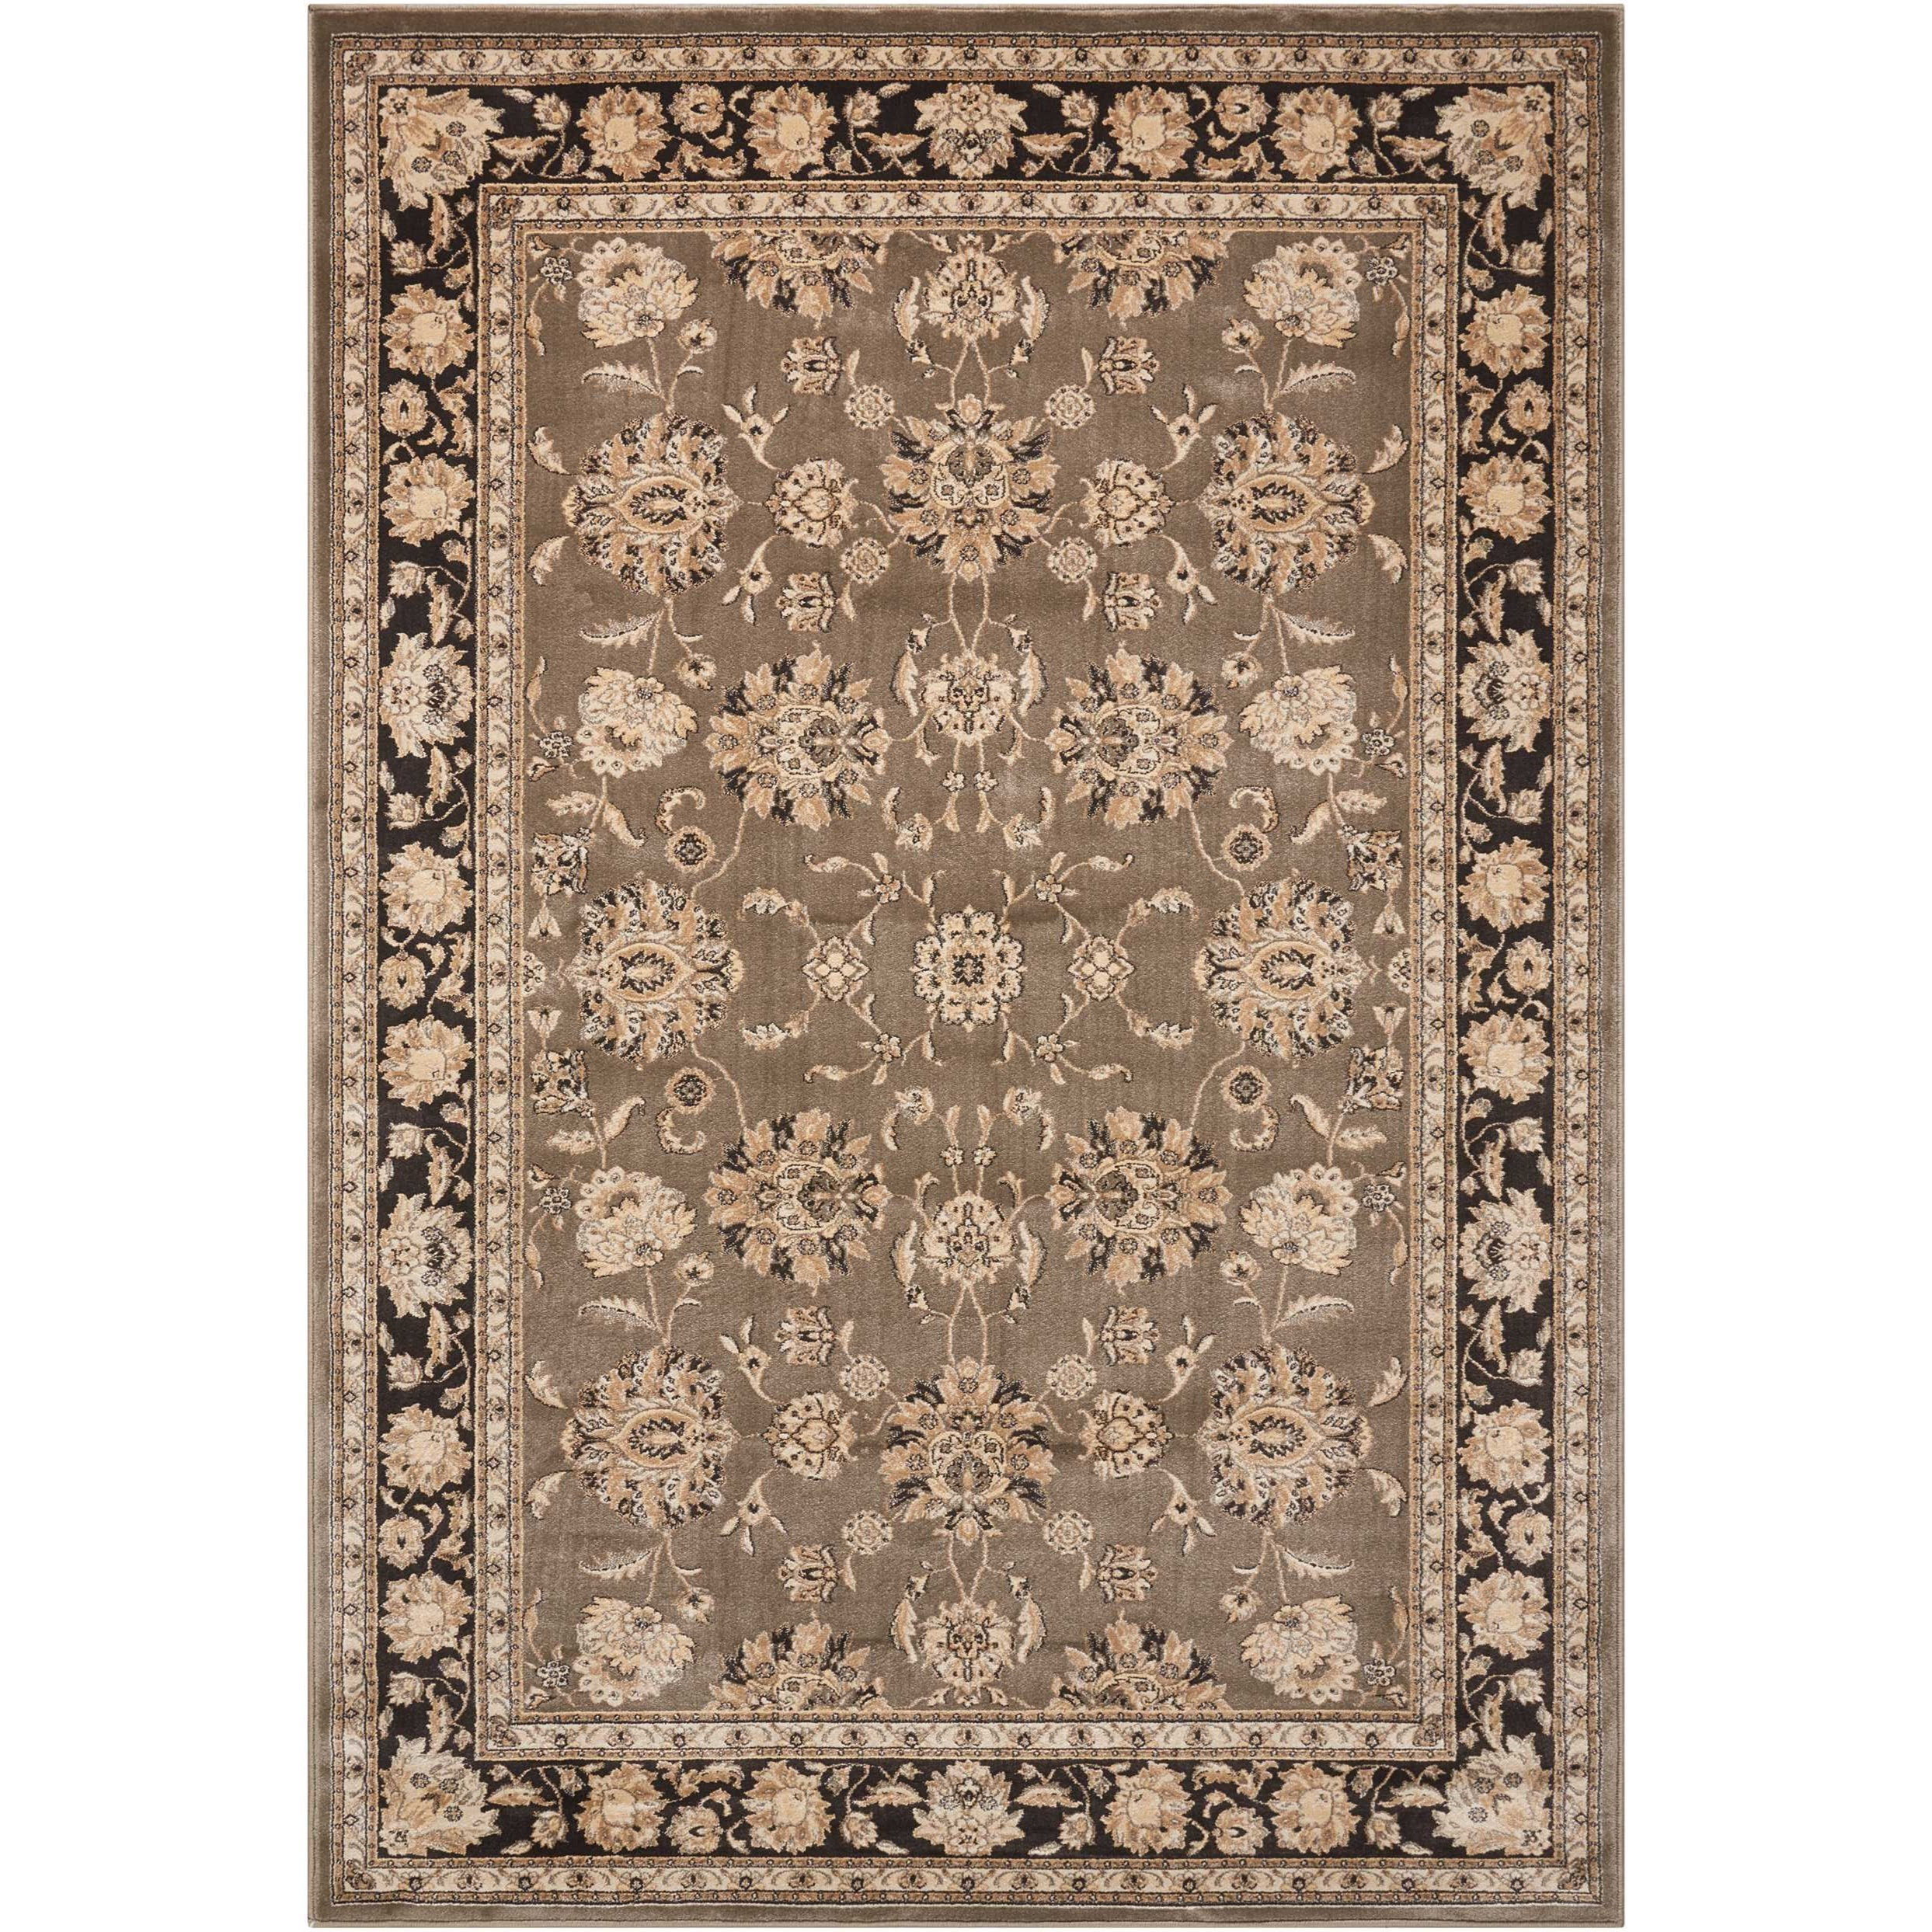 "Ararat 5'3"" x 7'4"" Grey Rectangle Rug by Nourison at Sprintz Furniture"